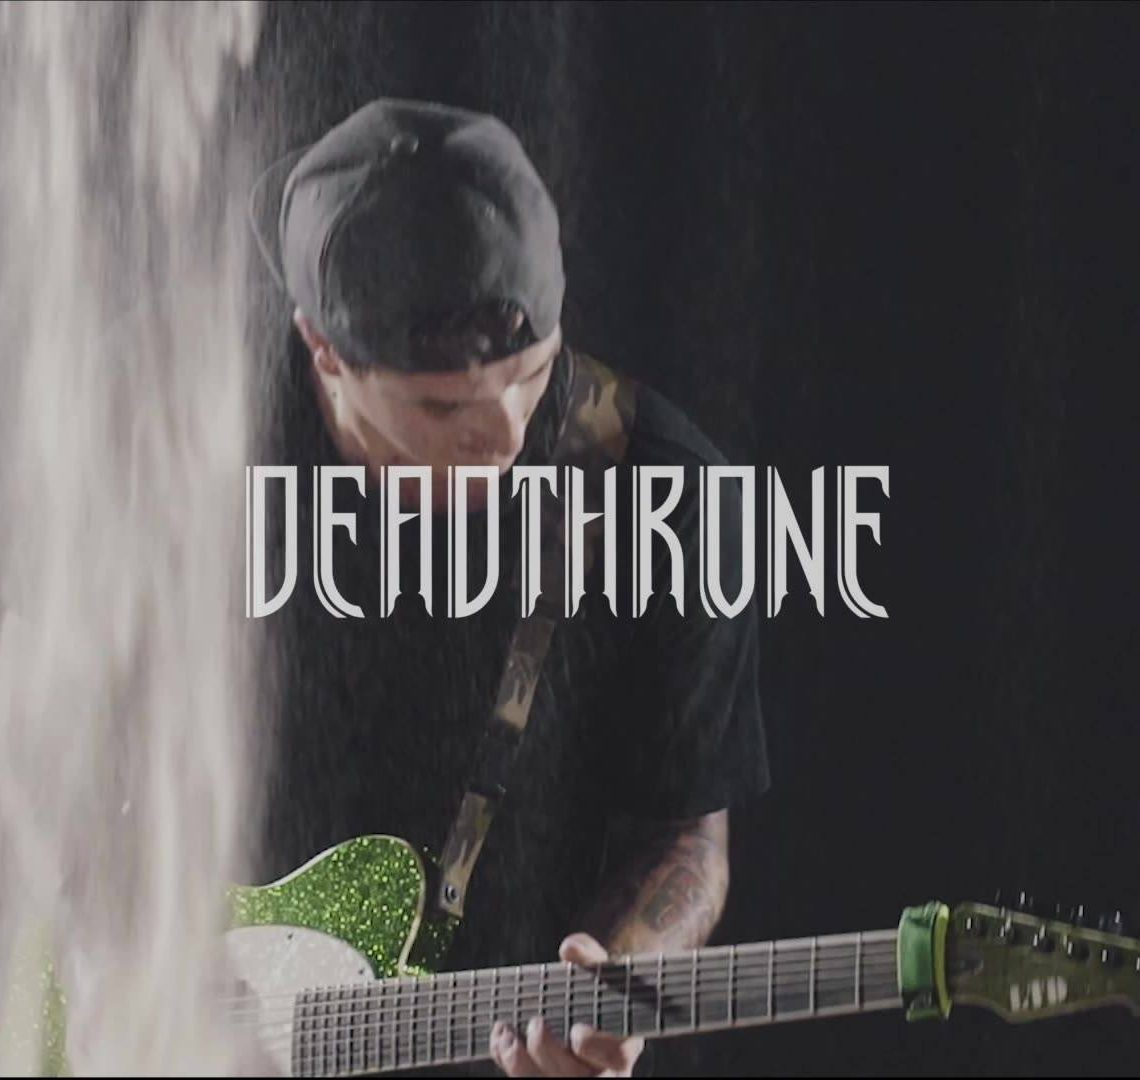 Chris Bissette of Deadthrone Interview and Album Review